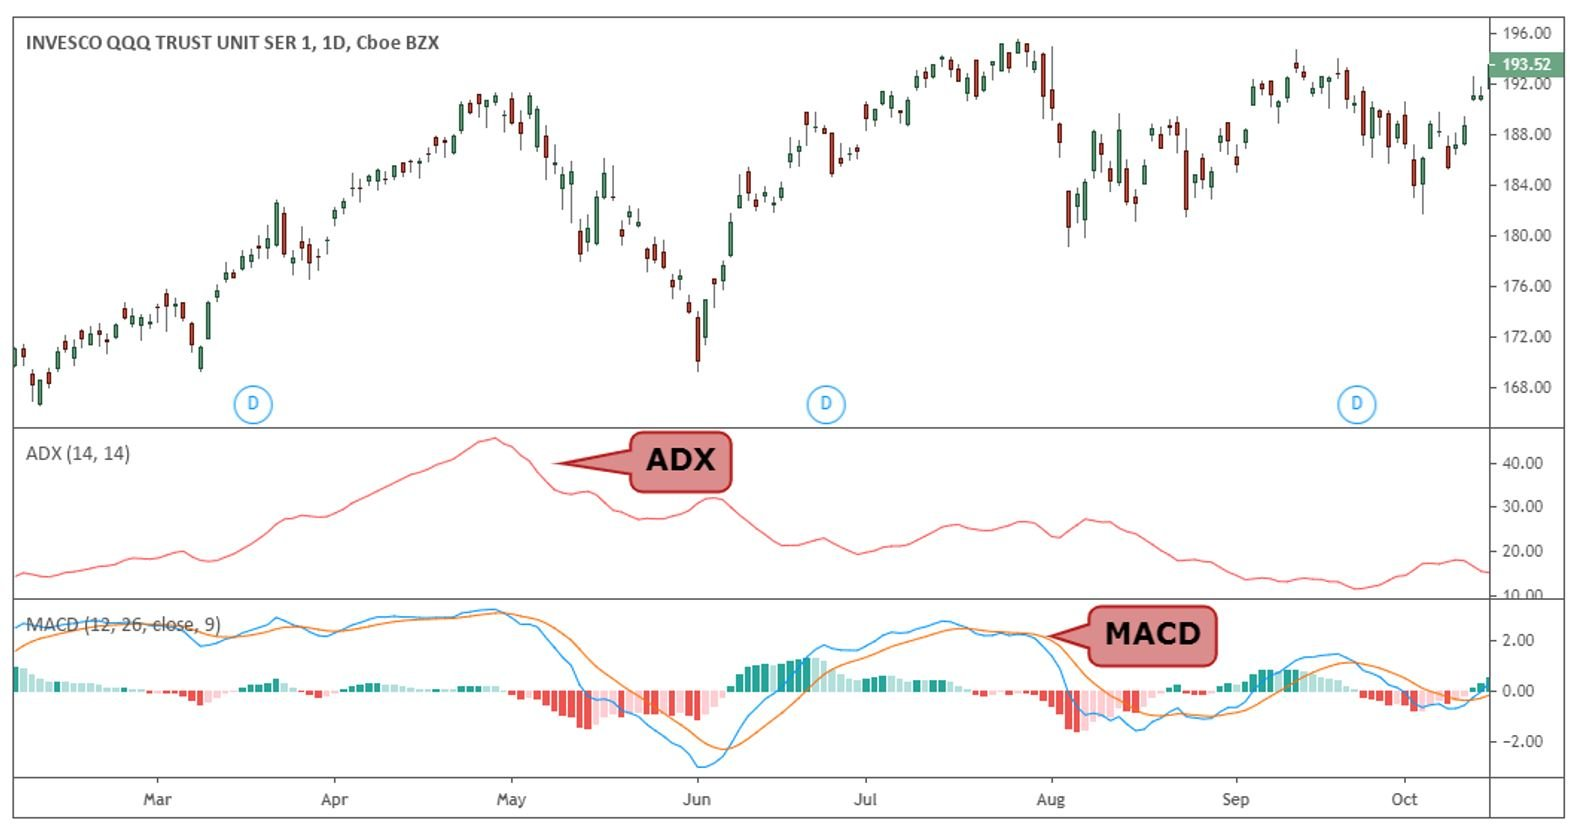 MACD indicator are two technical indicators